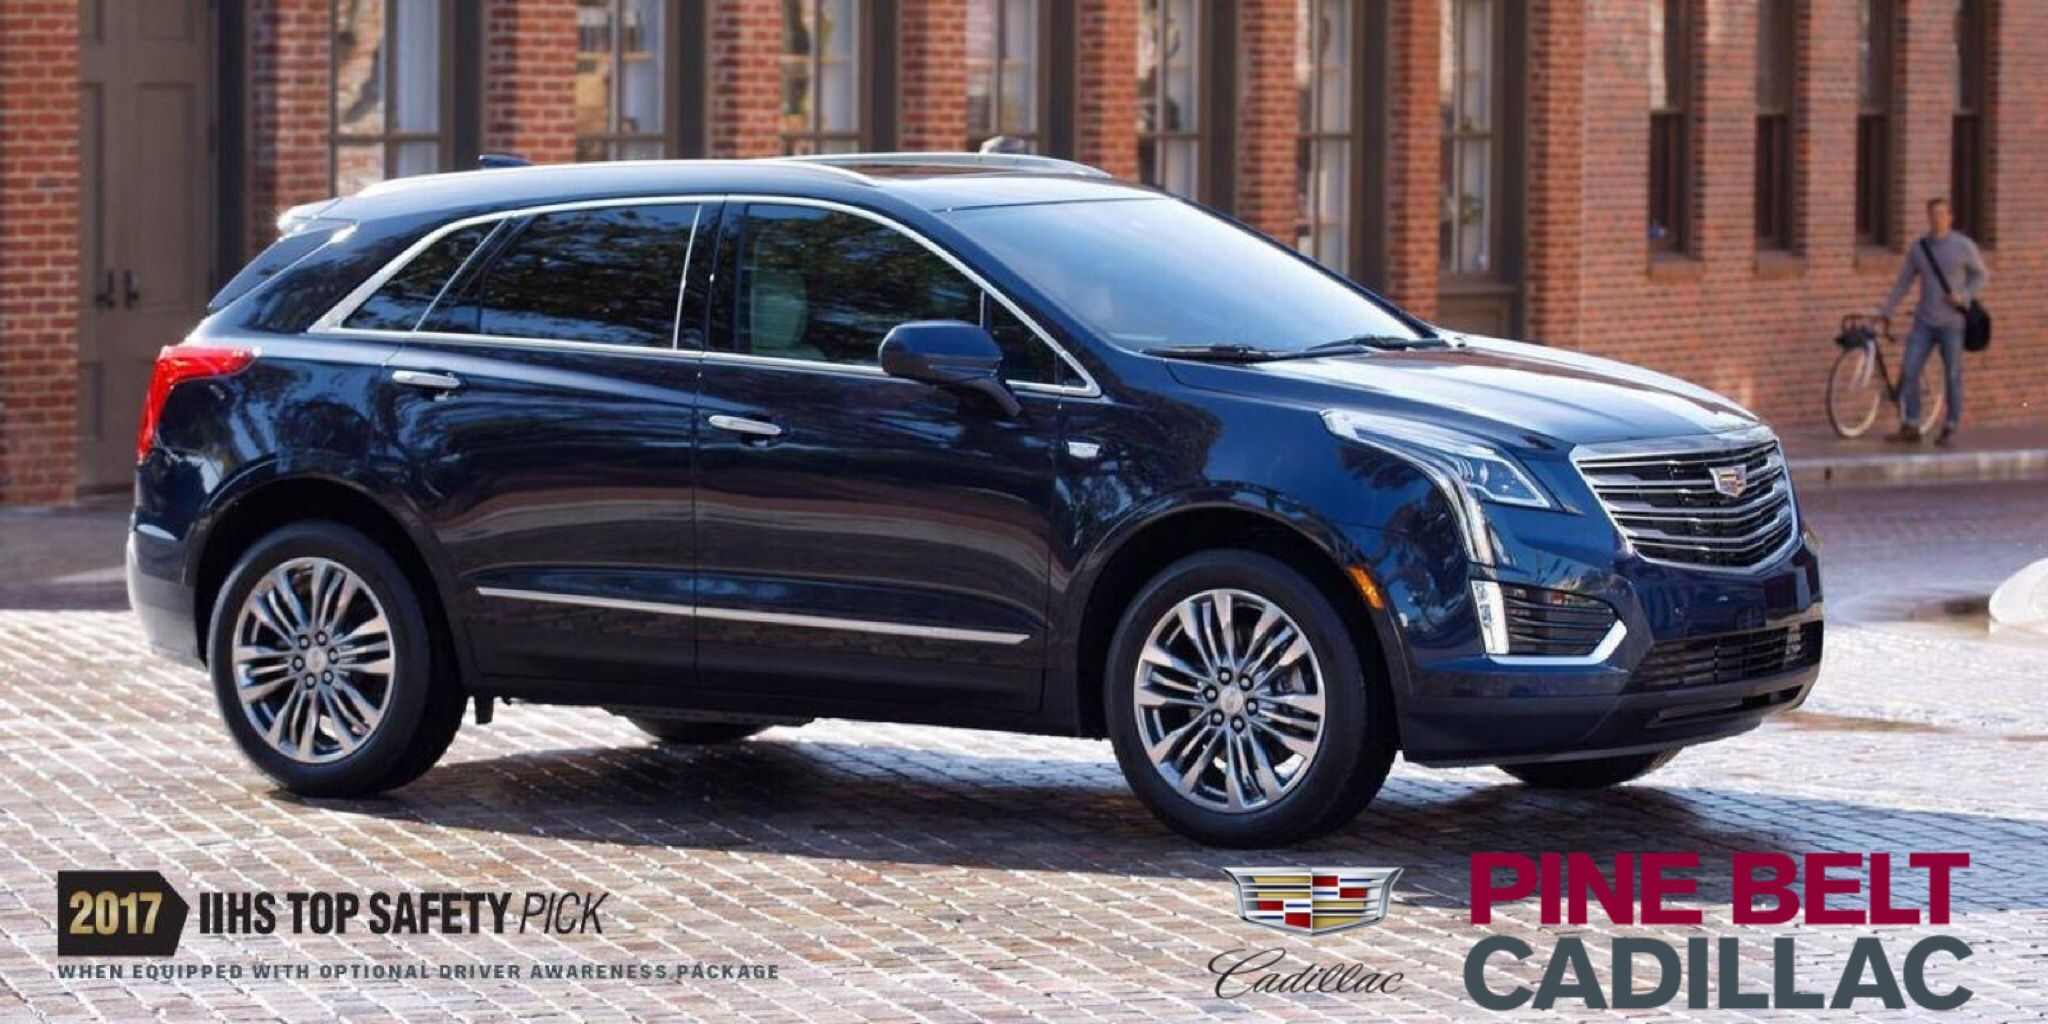 Pine Belt Cadillac >> Pine Belt Cadillac On Twitter As Safe As It Is Stylish The 2017